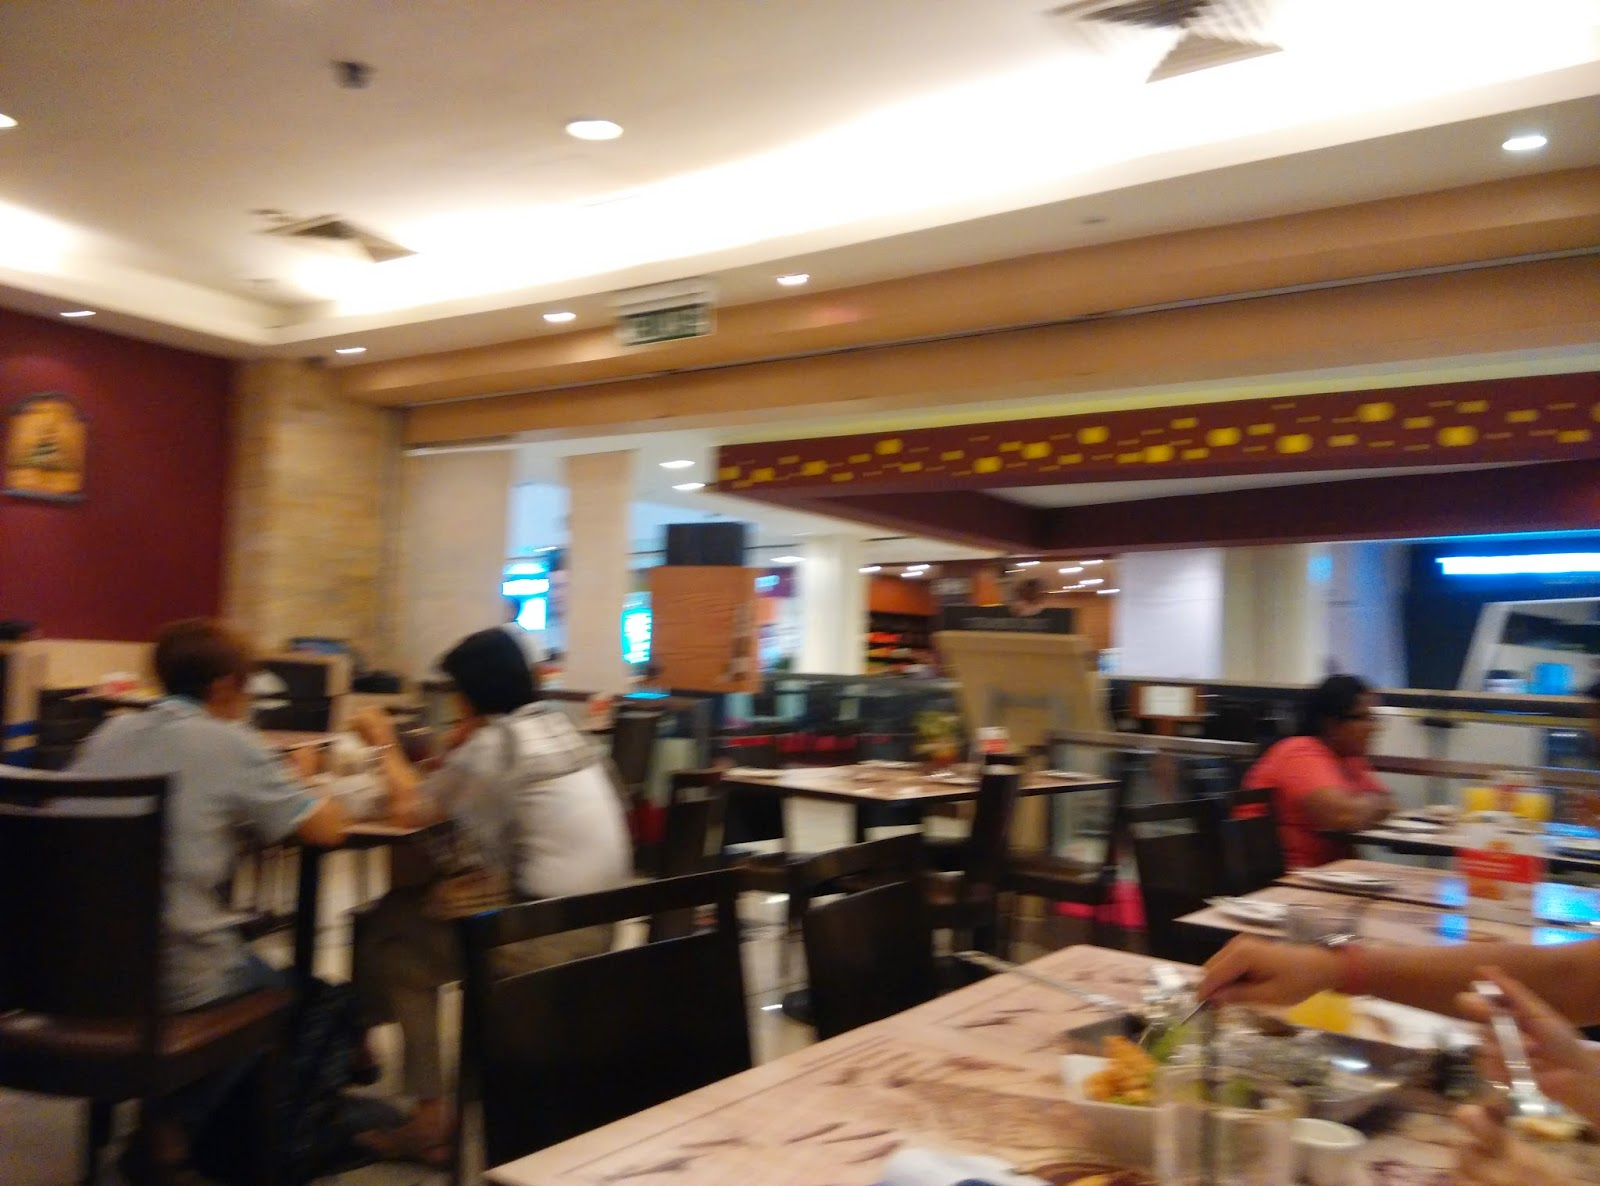 Our journey penang queensbay mall the manhattan fish for The fish market restaurant